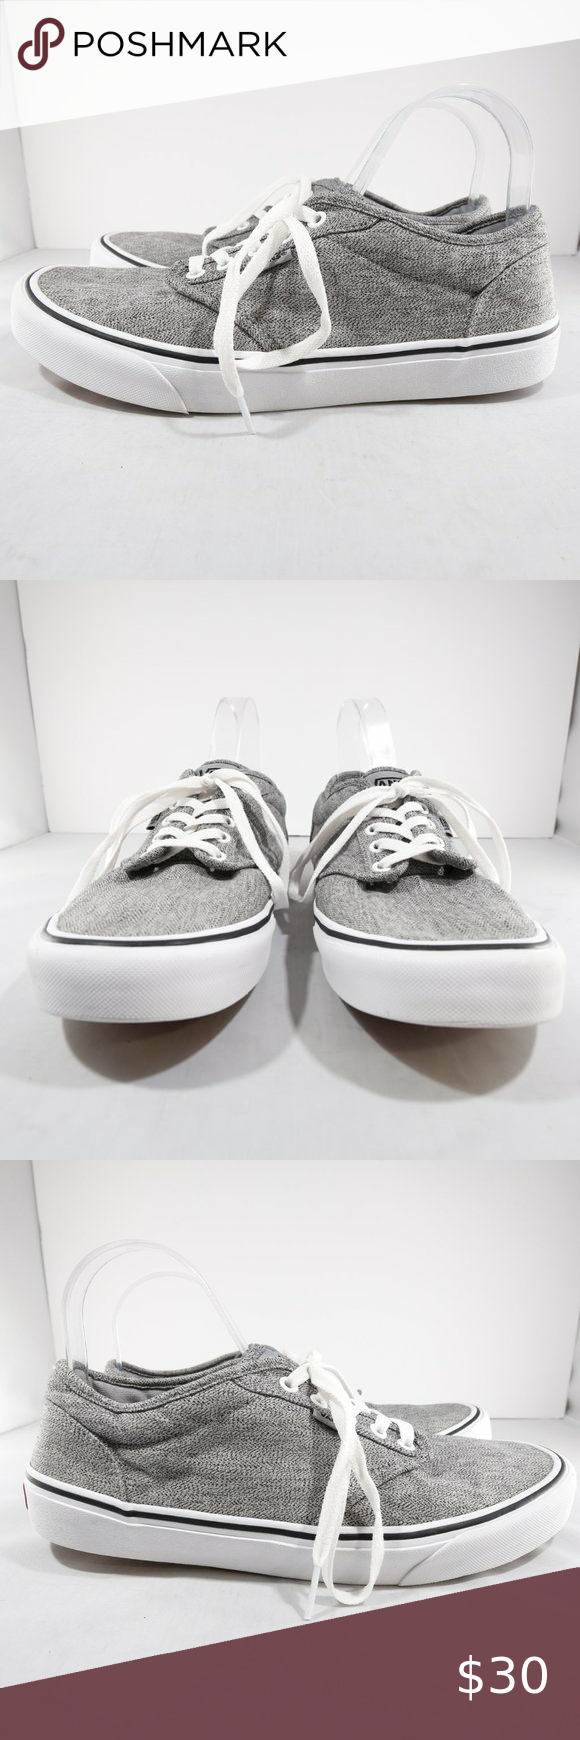 VANS Atwood Gray/White Lace-Up Sneakers - 10.5/44 | Sneakers, Lace ...